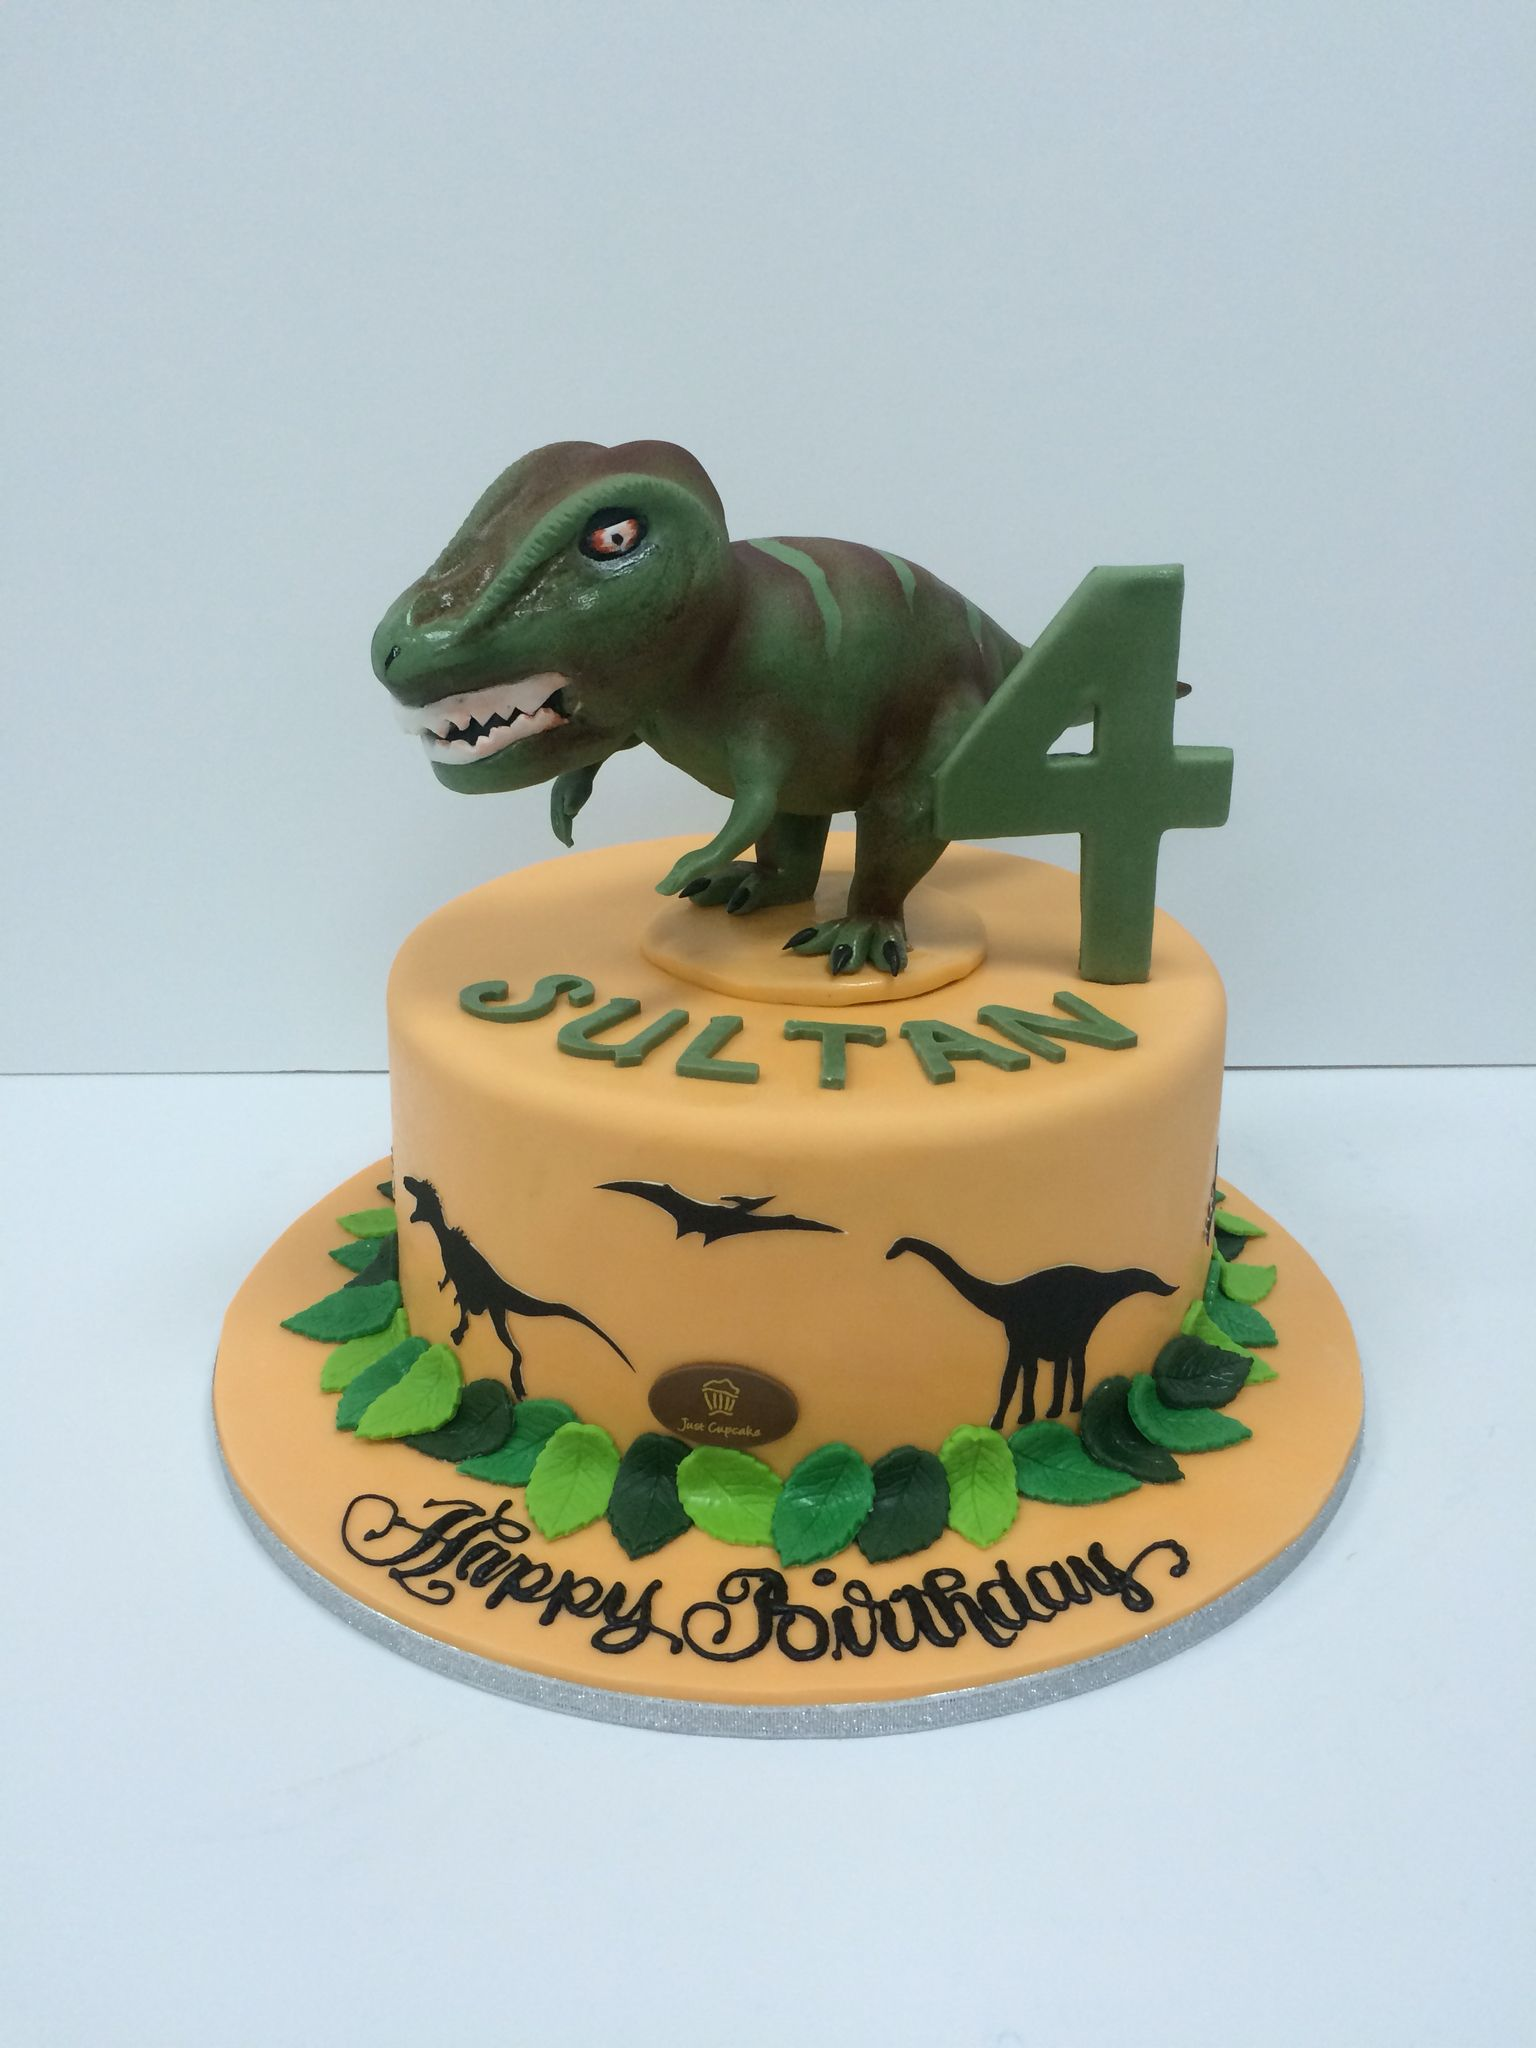 TRex Cake My Cake Creations Pinterest Cake Birthdays and